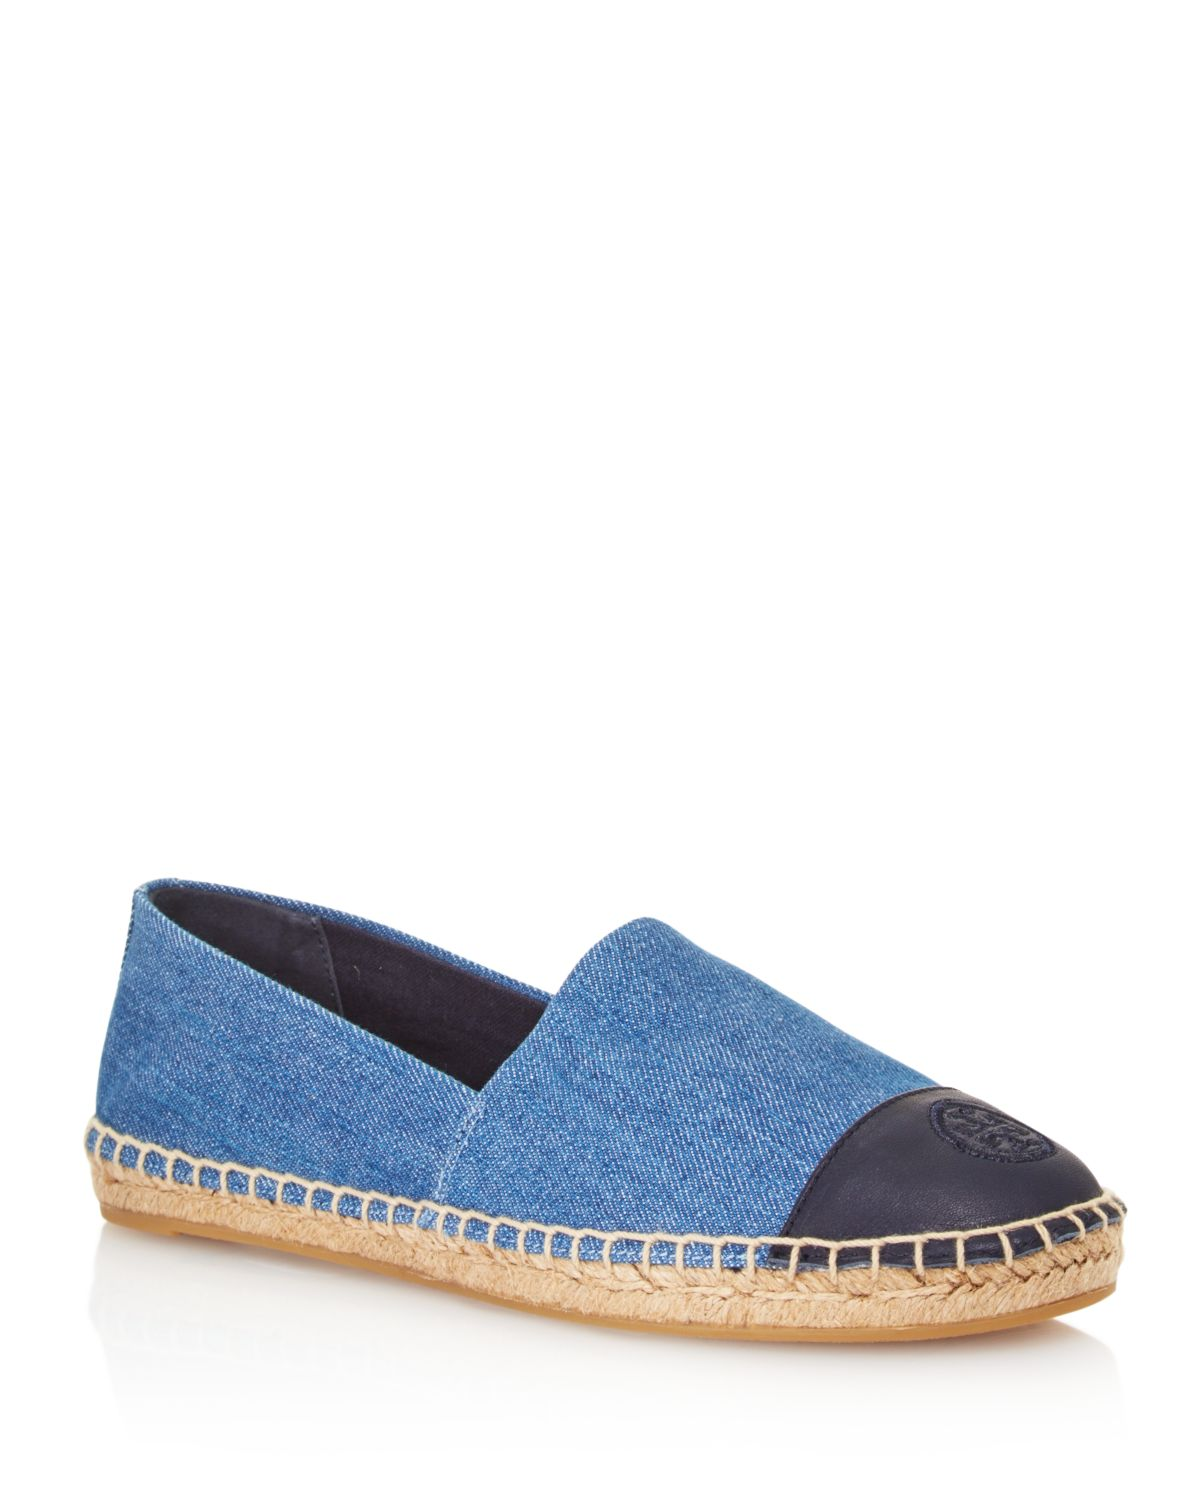 Tory Burch Women's Denim Color-Block Cap Toe Espadrilles